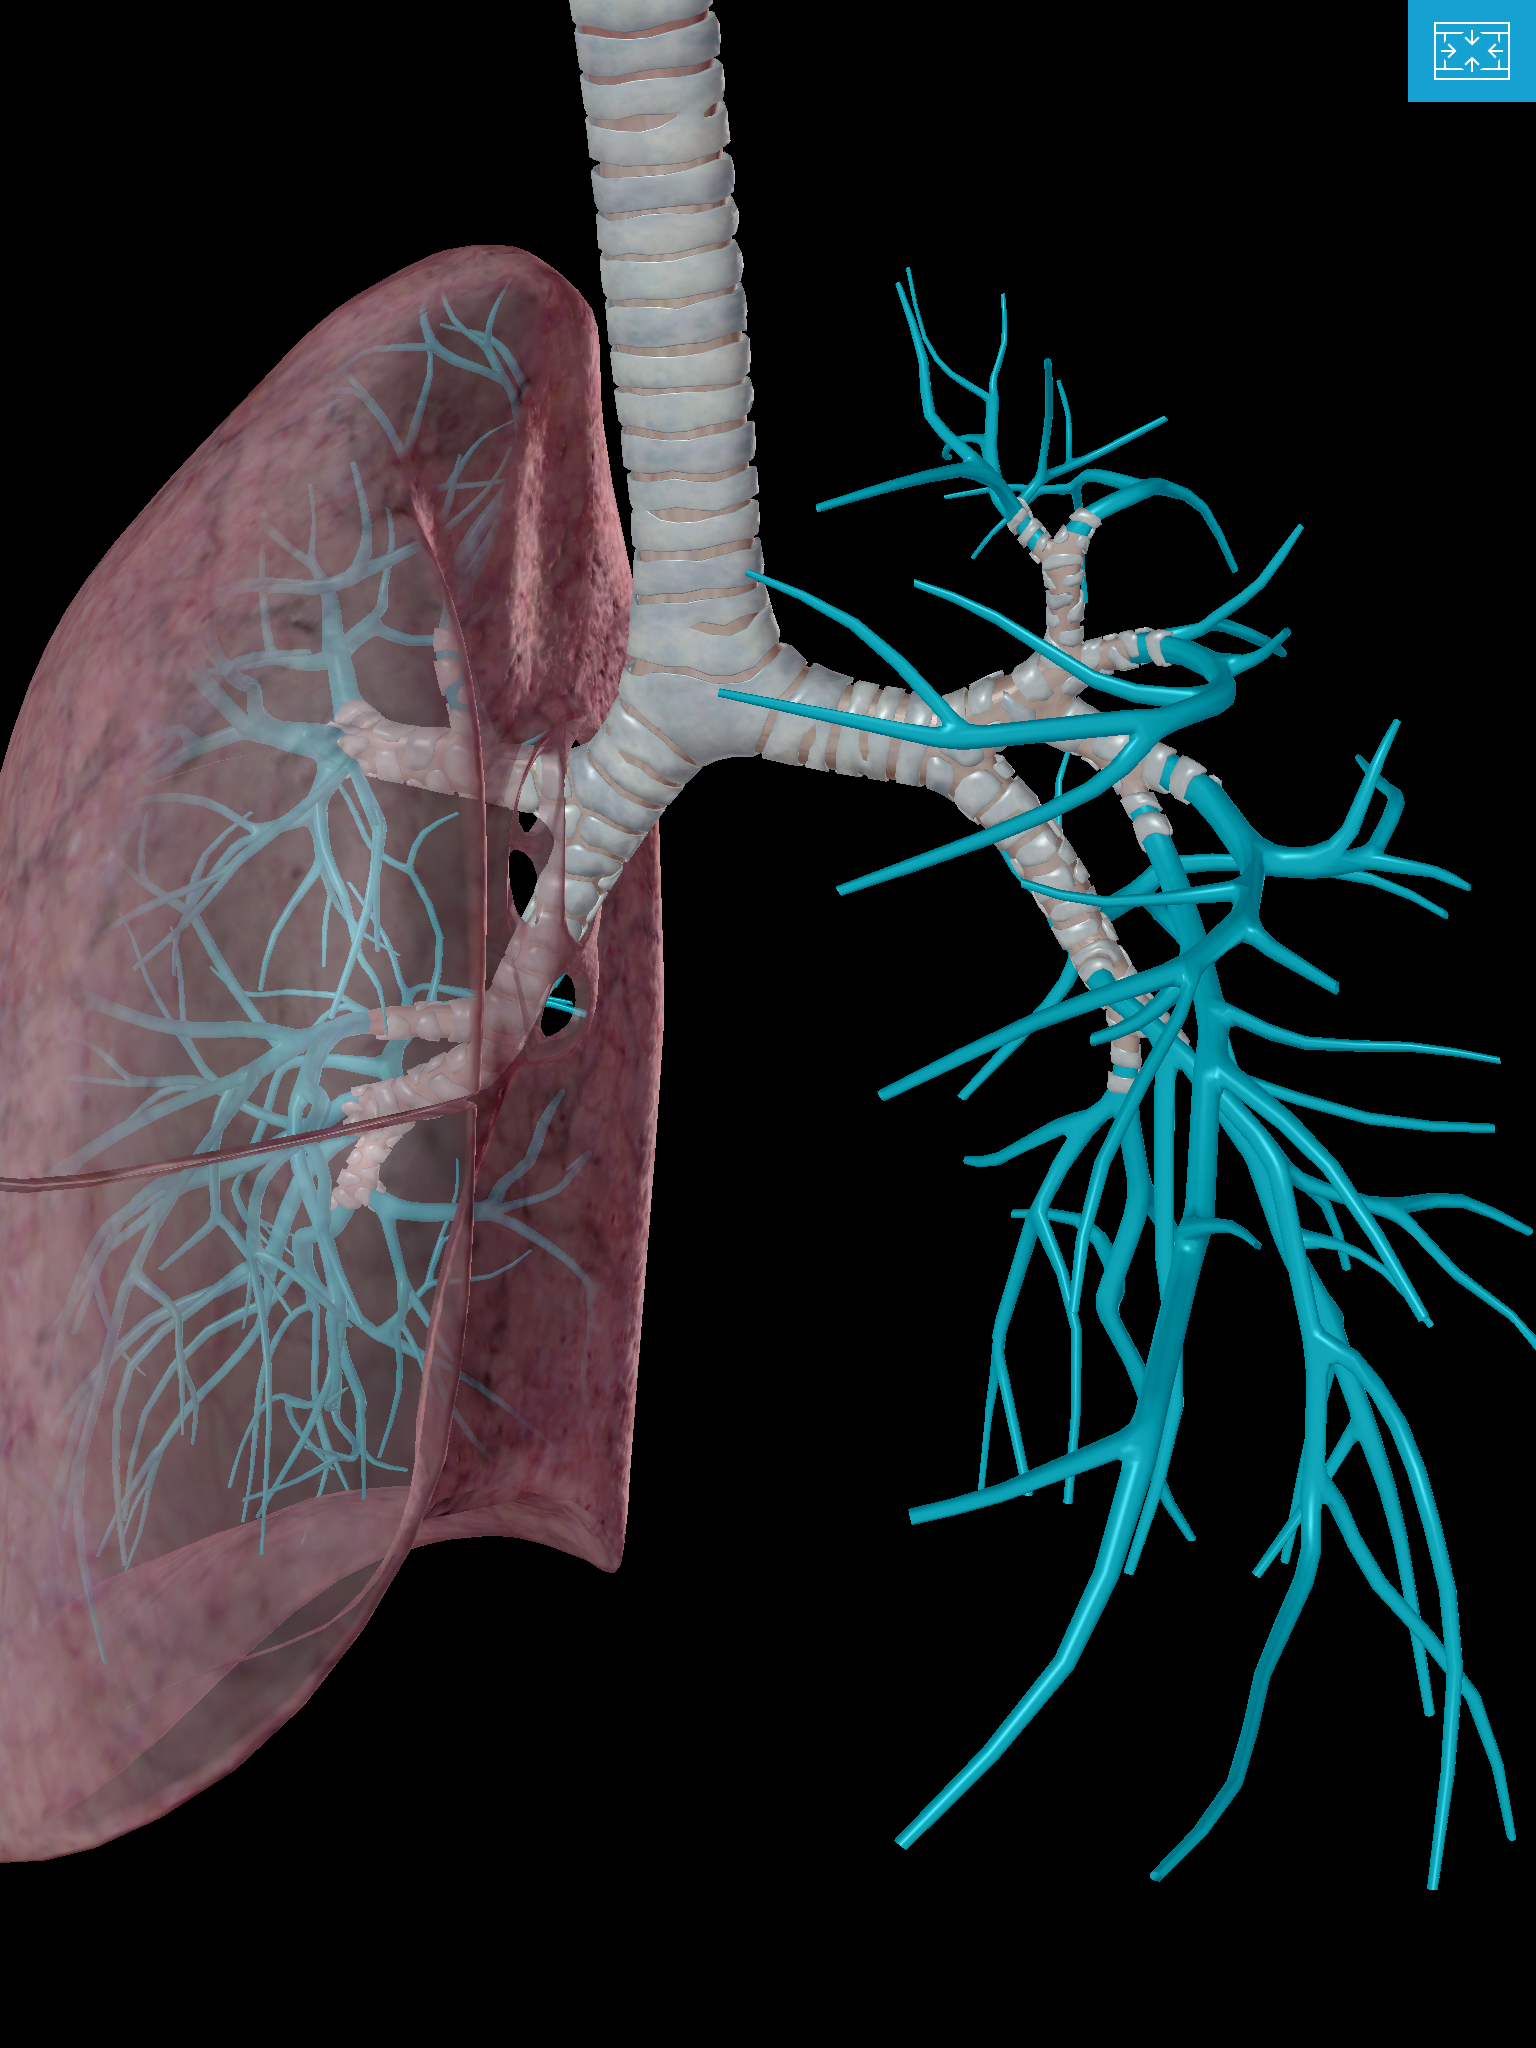 Lower-Respiratory-system-lungs-tertiary-segmental-bronchus-Bronchioles-alveoli.png